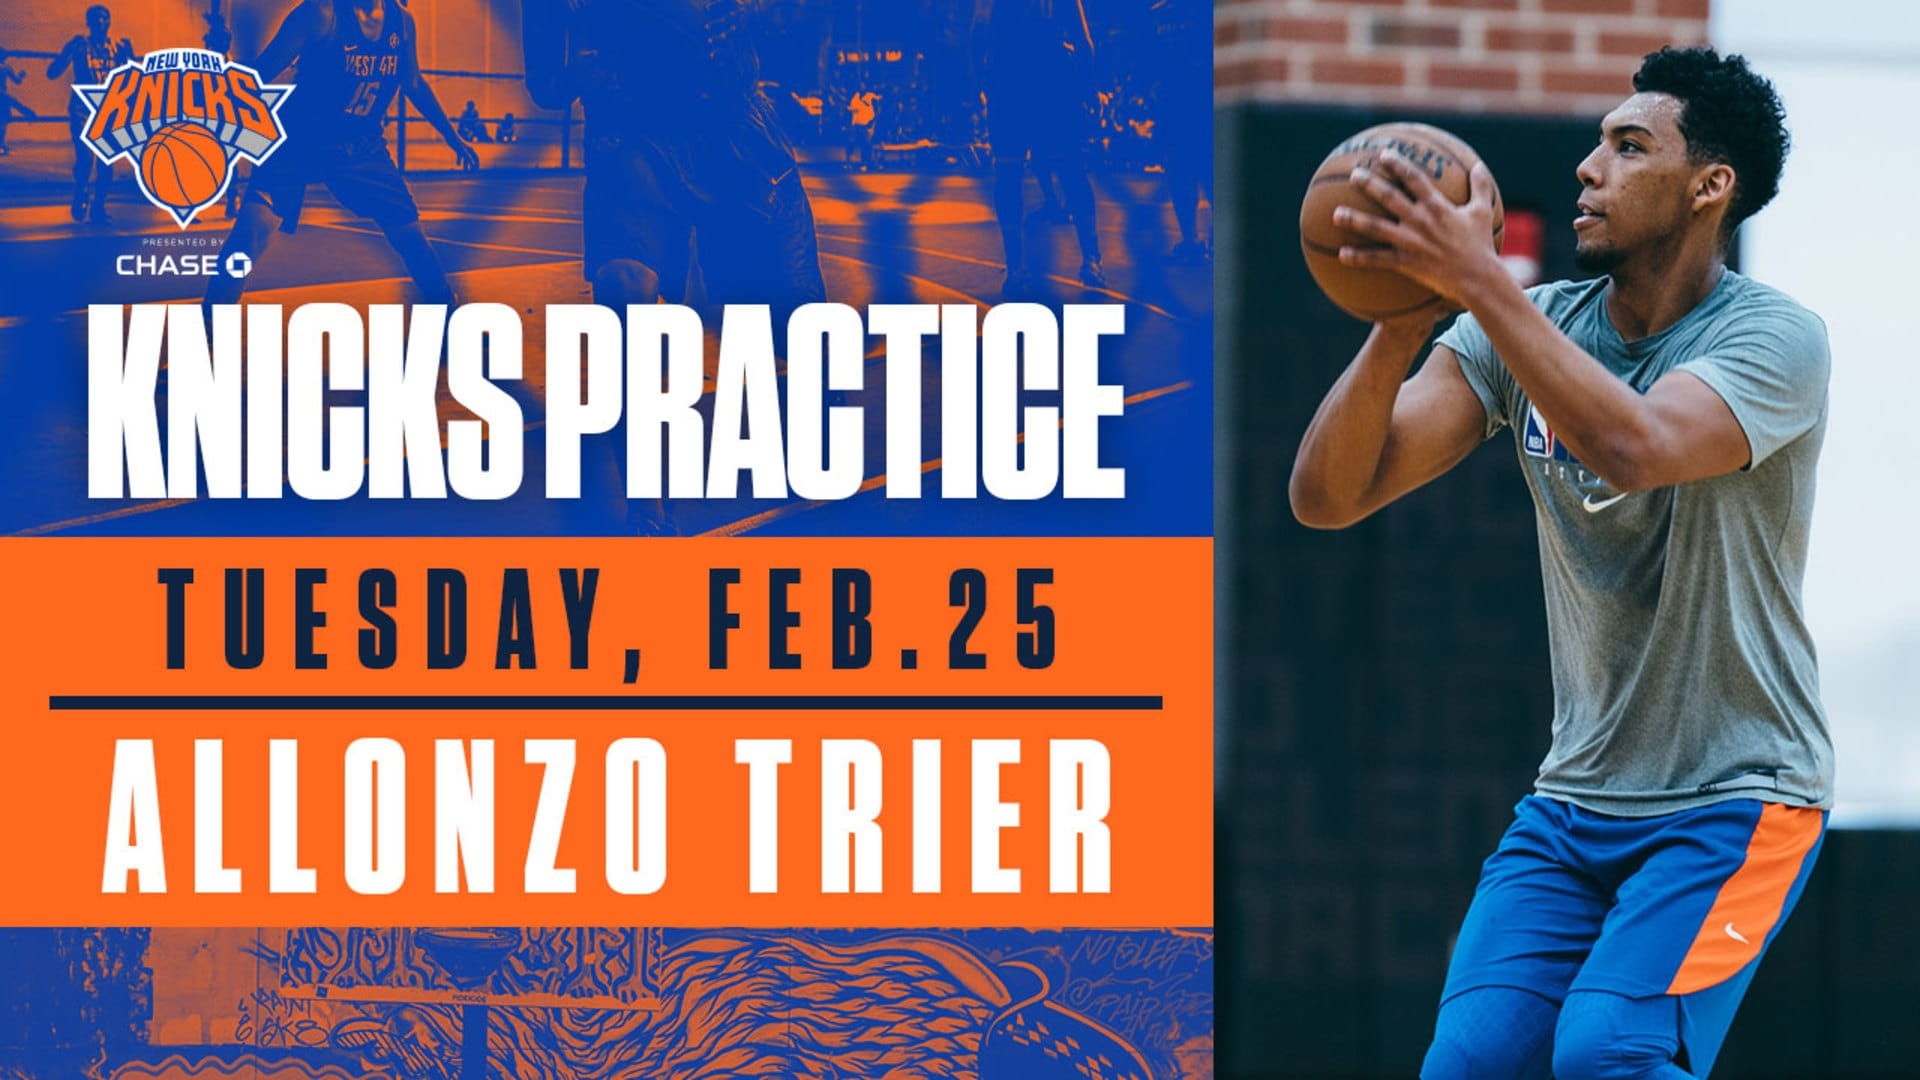 Knicks Practice: Allonzo Trier | February 25